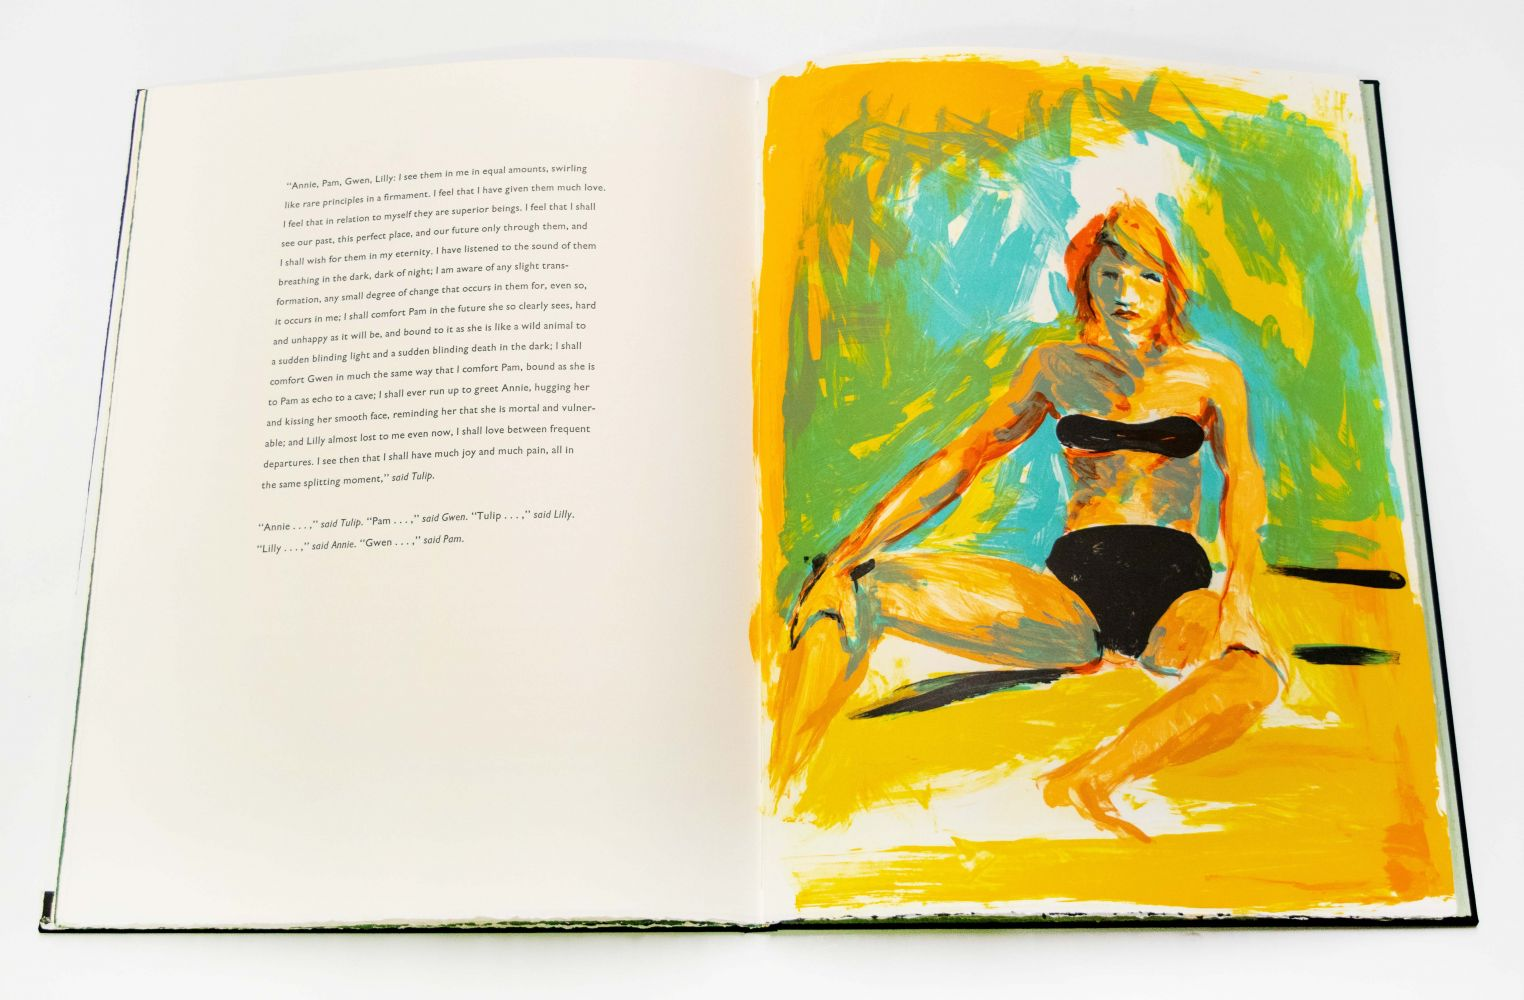 Eric Fischl and Jamaica Kincade Annie, Gwen, Lilly, Pam and Tulip, 1968